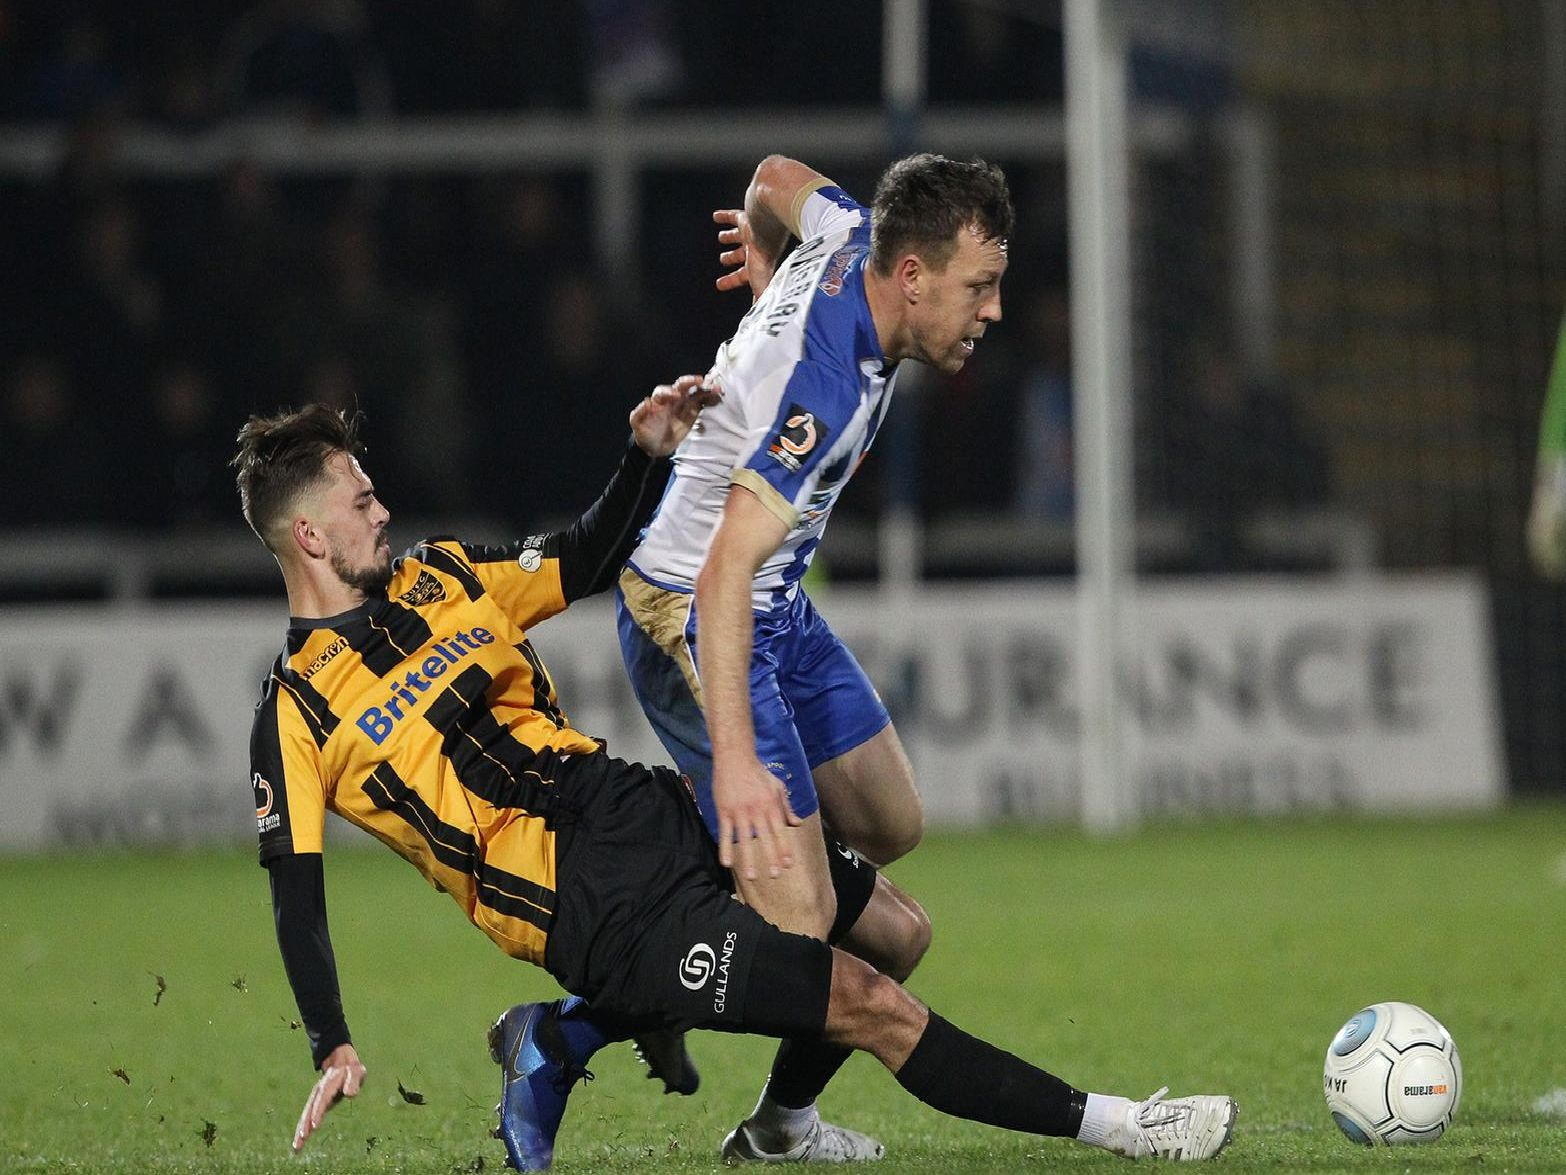 Hartlepool United's Carl Magnay battles for the ball.